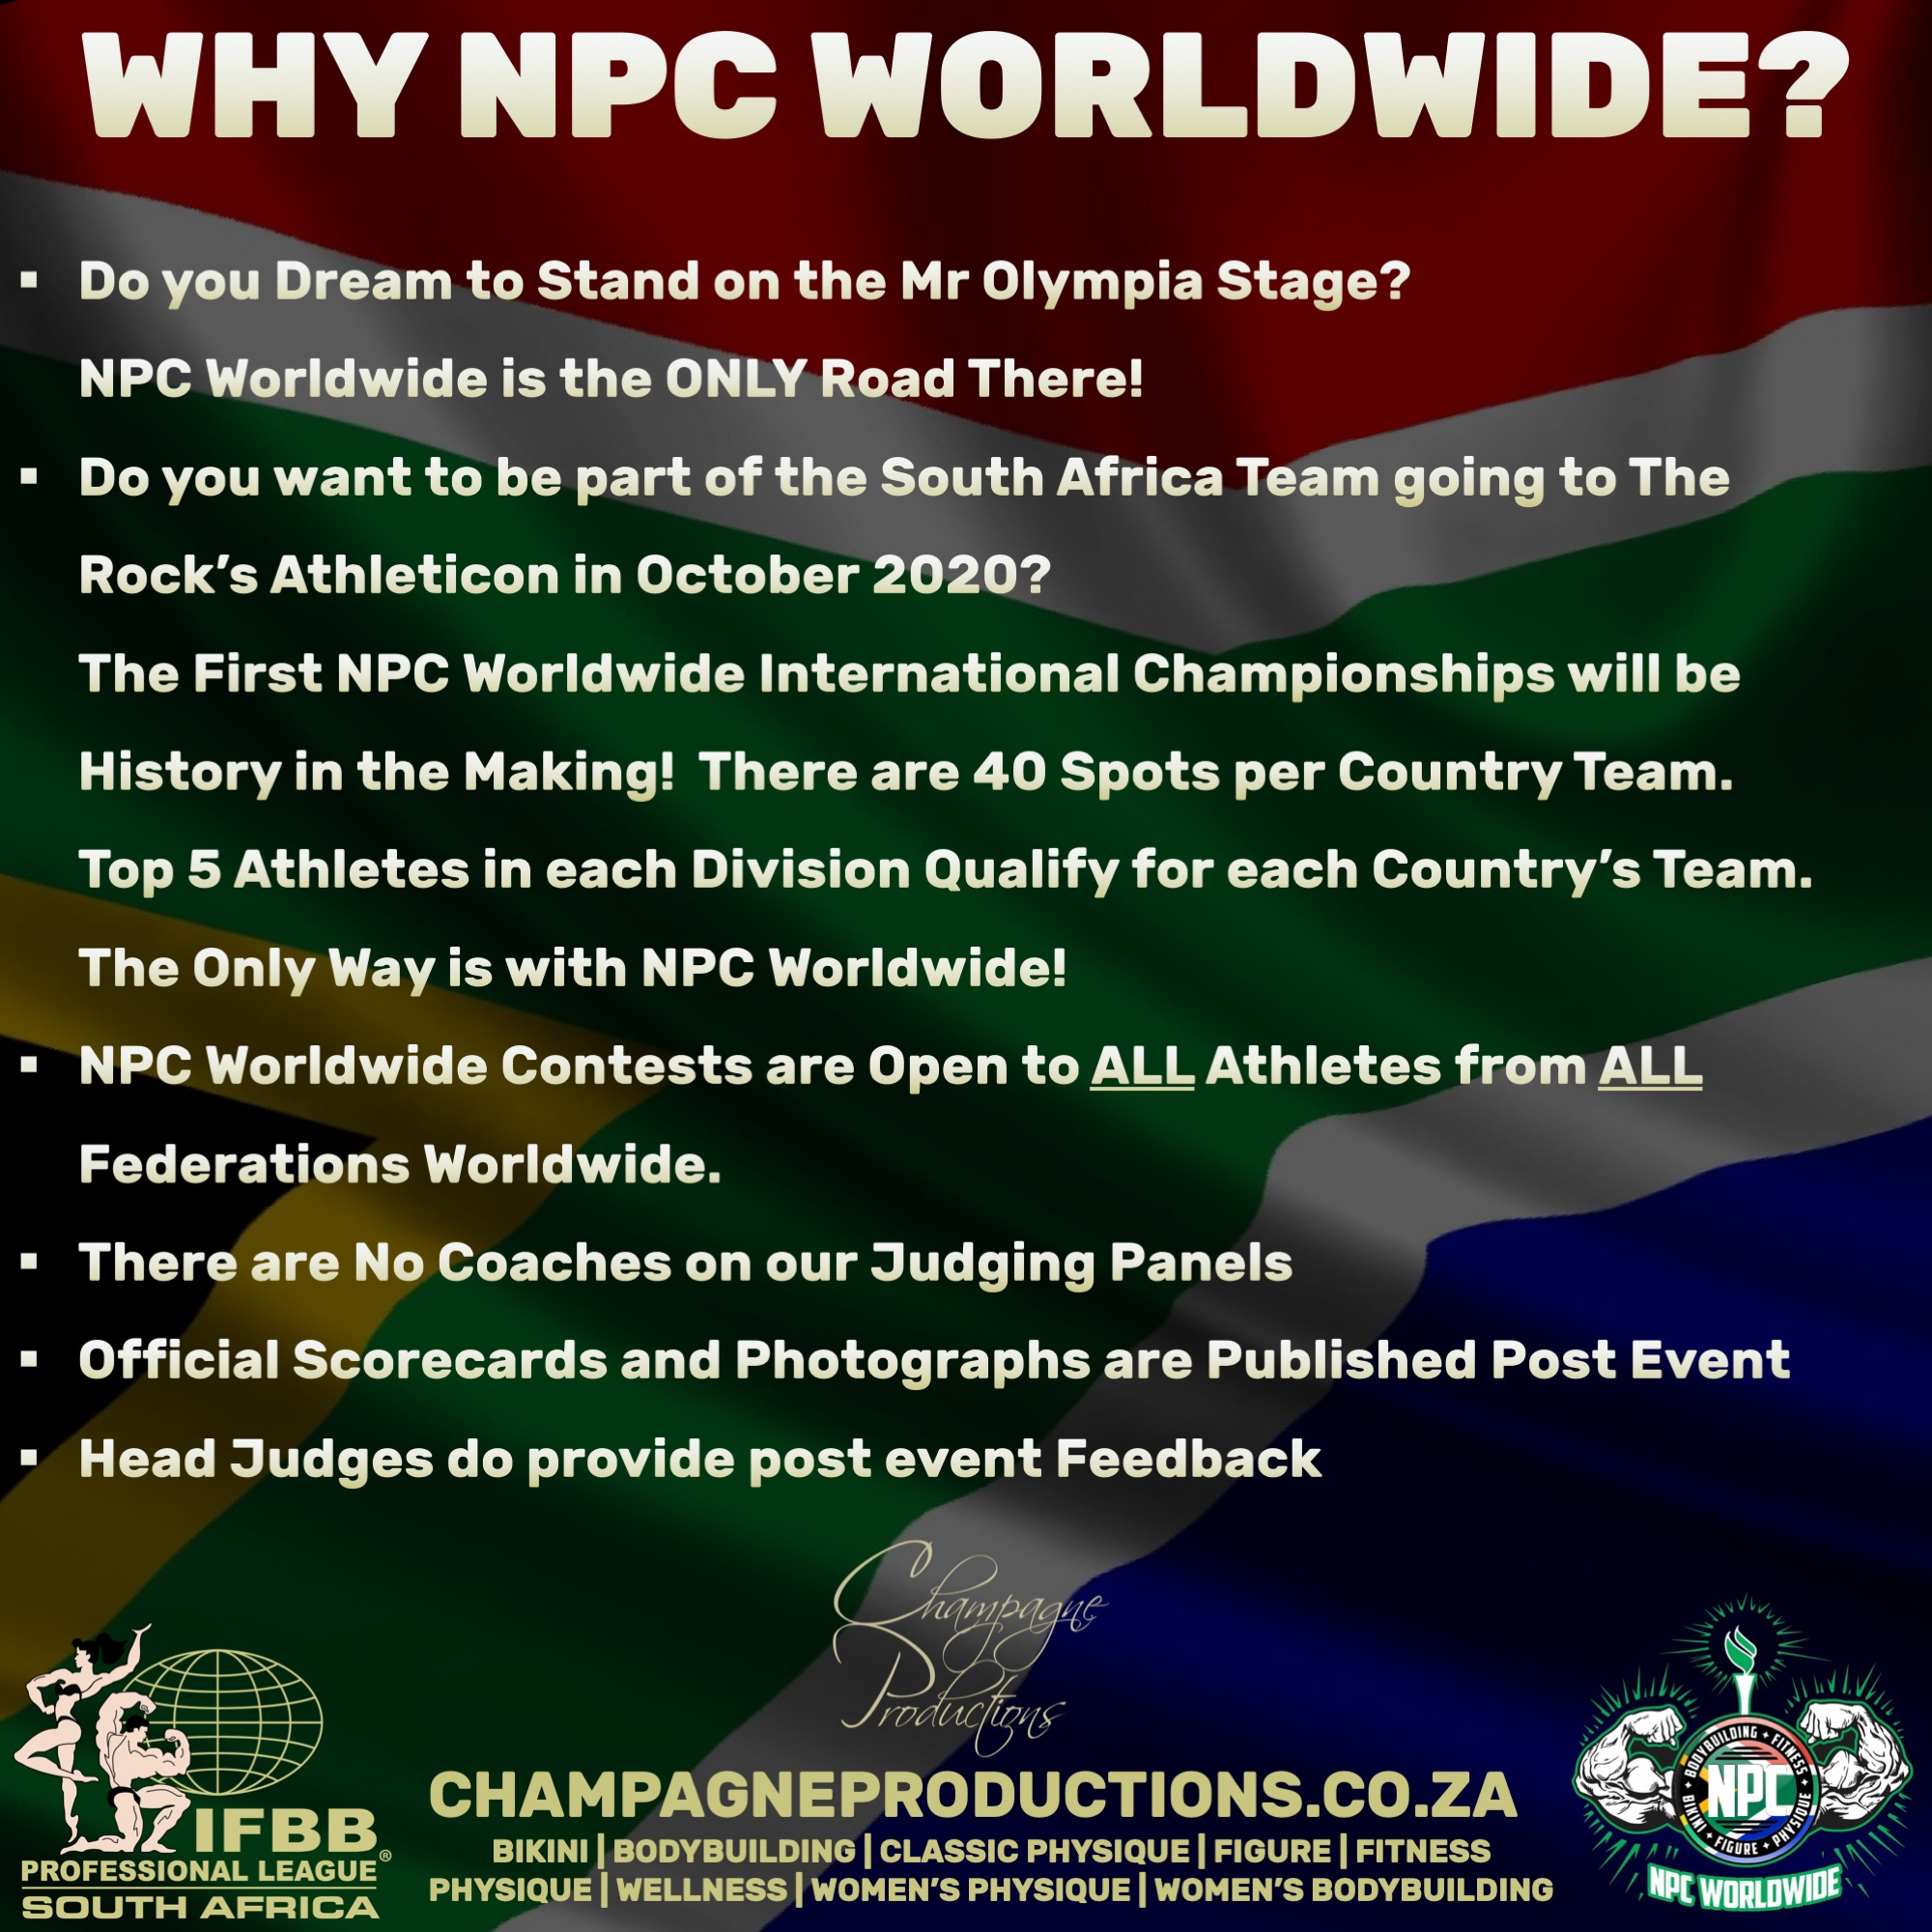 Competitors who are Residents/Citizens of South Africa are required to participate in at least 1 NPC Worldwide Regional Qualifier in South Africa prior to their participation in any NPC Worldwide Pro Qualifier hosted Worldwide